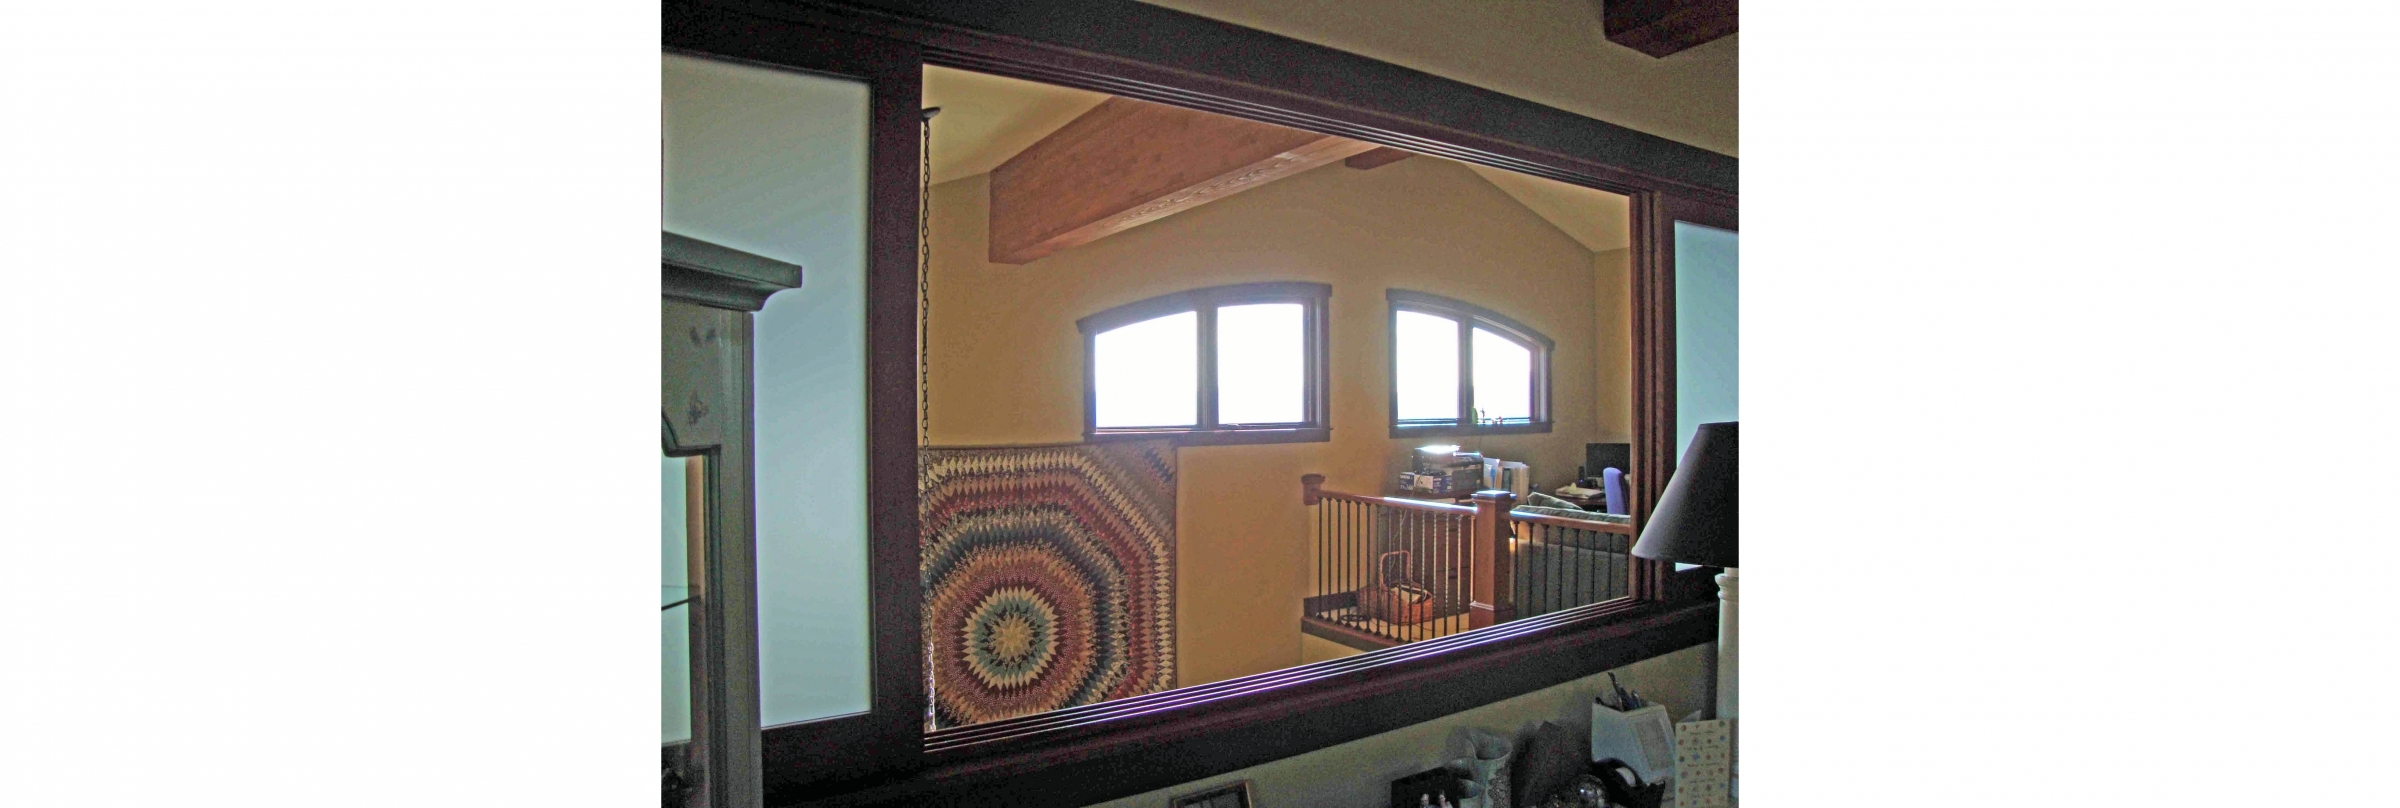 custom shoji screens for loft bedroom opening into great room and mountain valley vistas beyond, designed and built by Timber Ridge Craftsmen Inc of Smith Mountain Lake Virginia